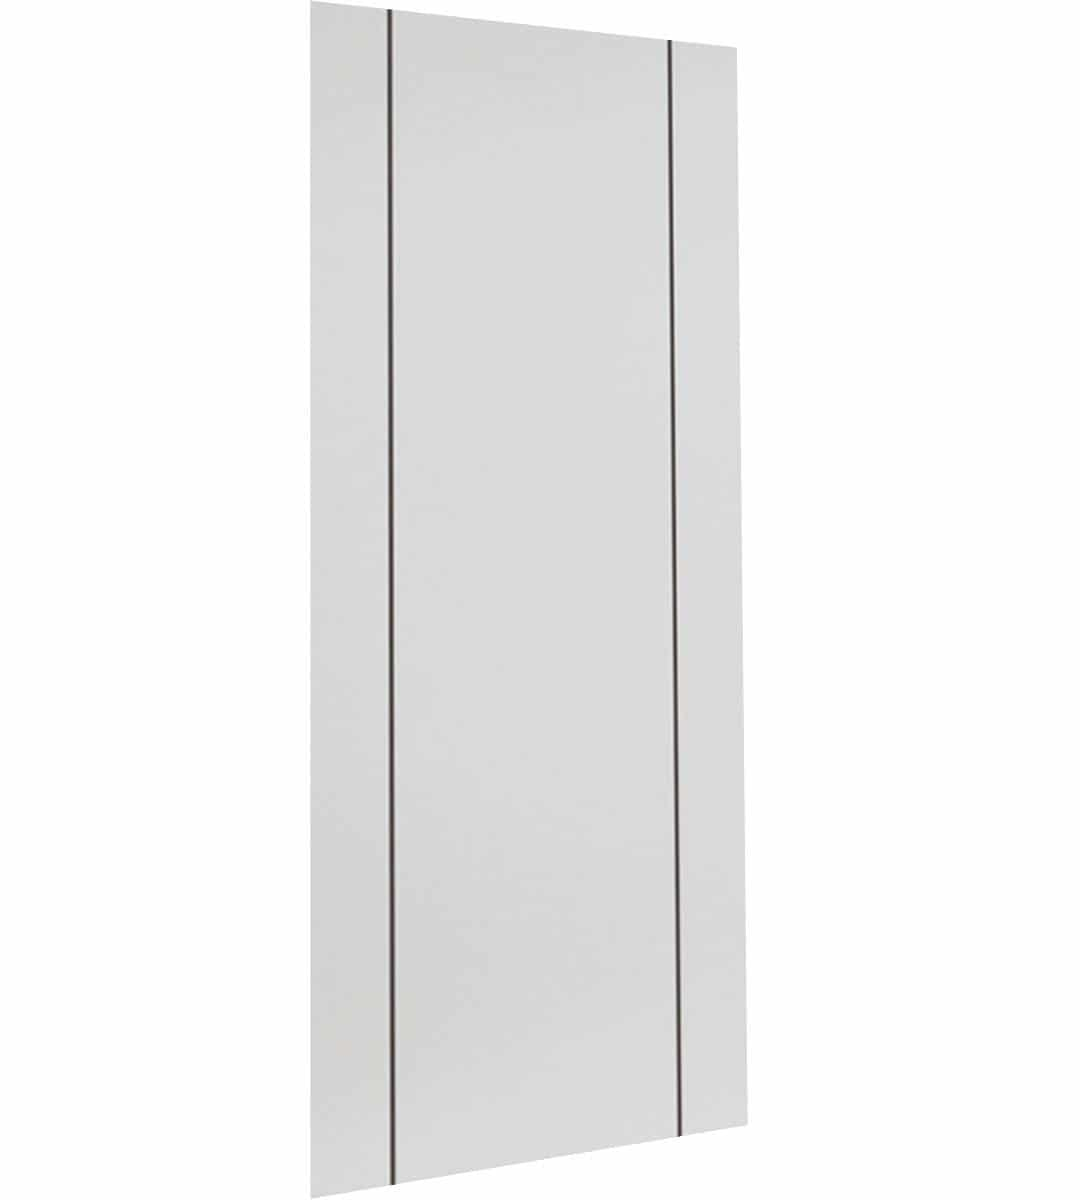 eco parelo white interior door